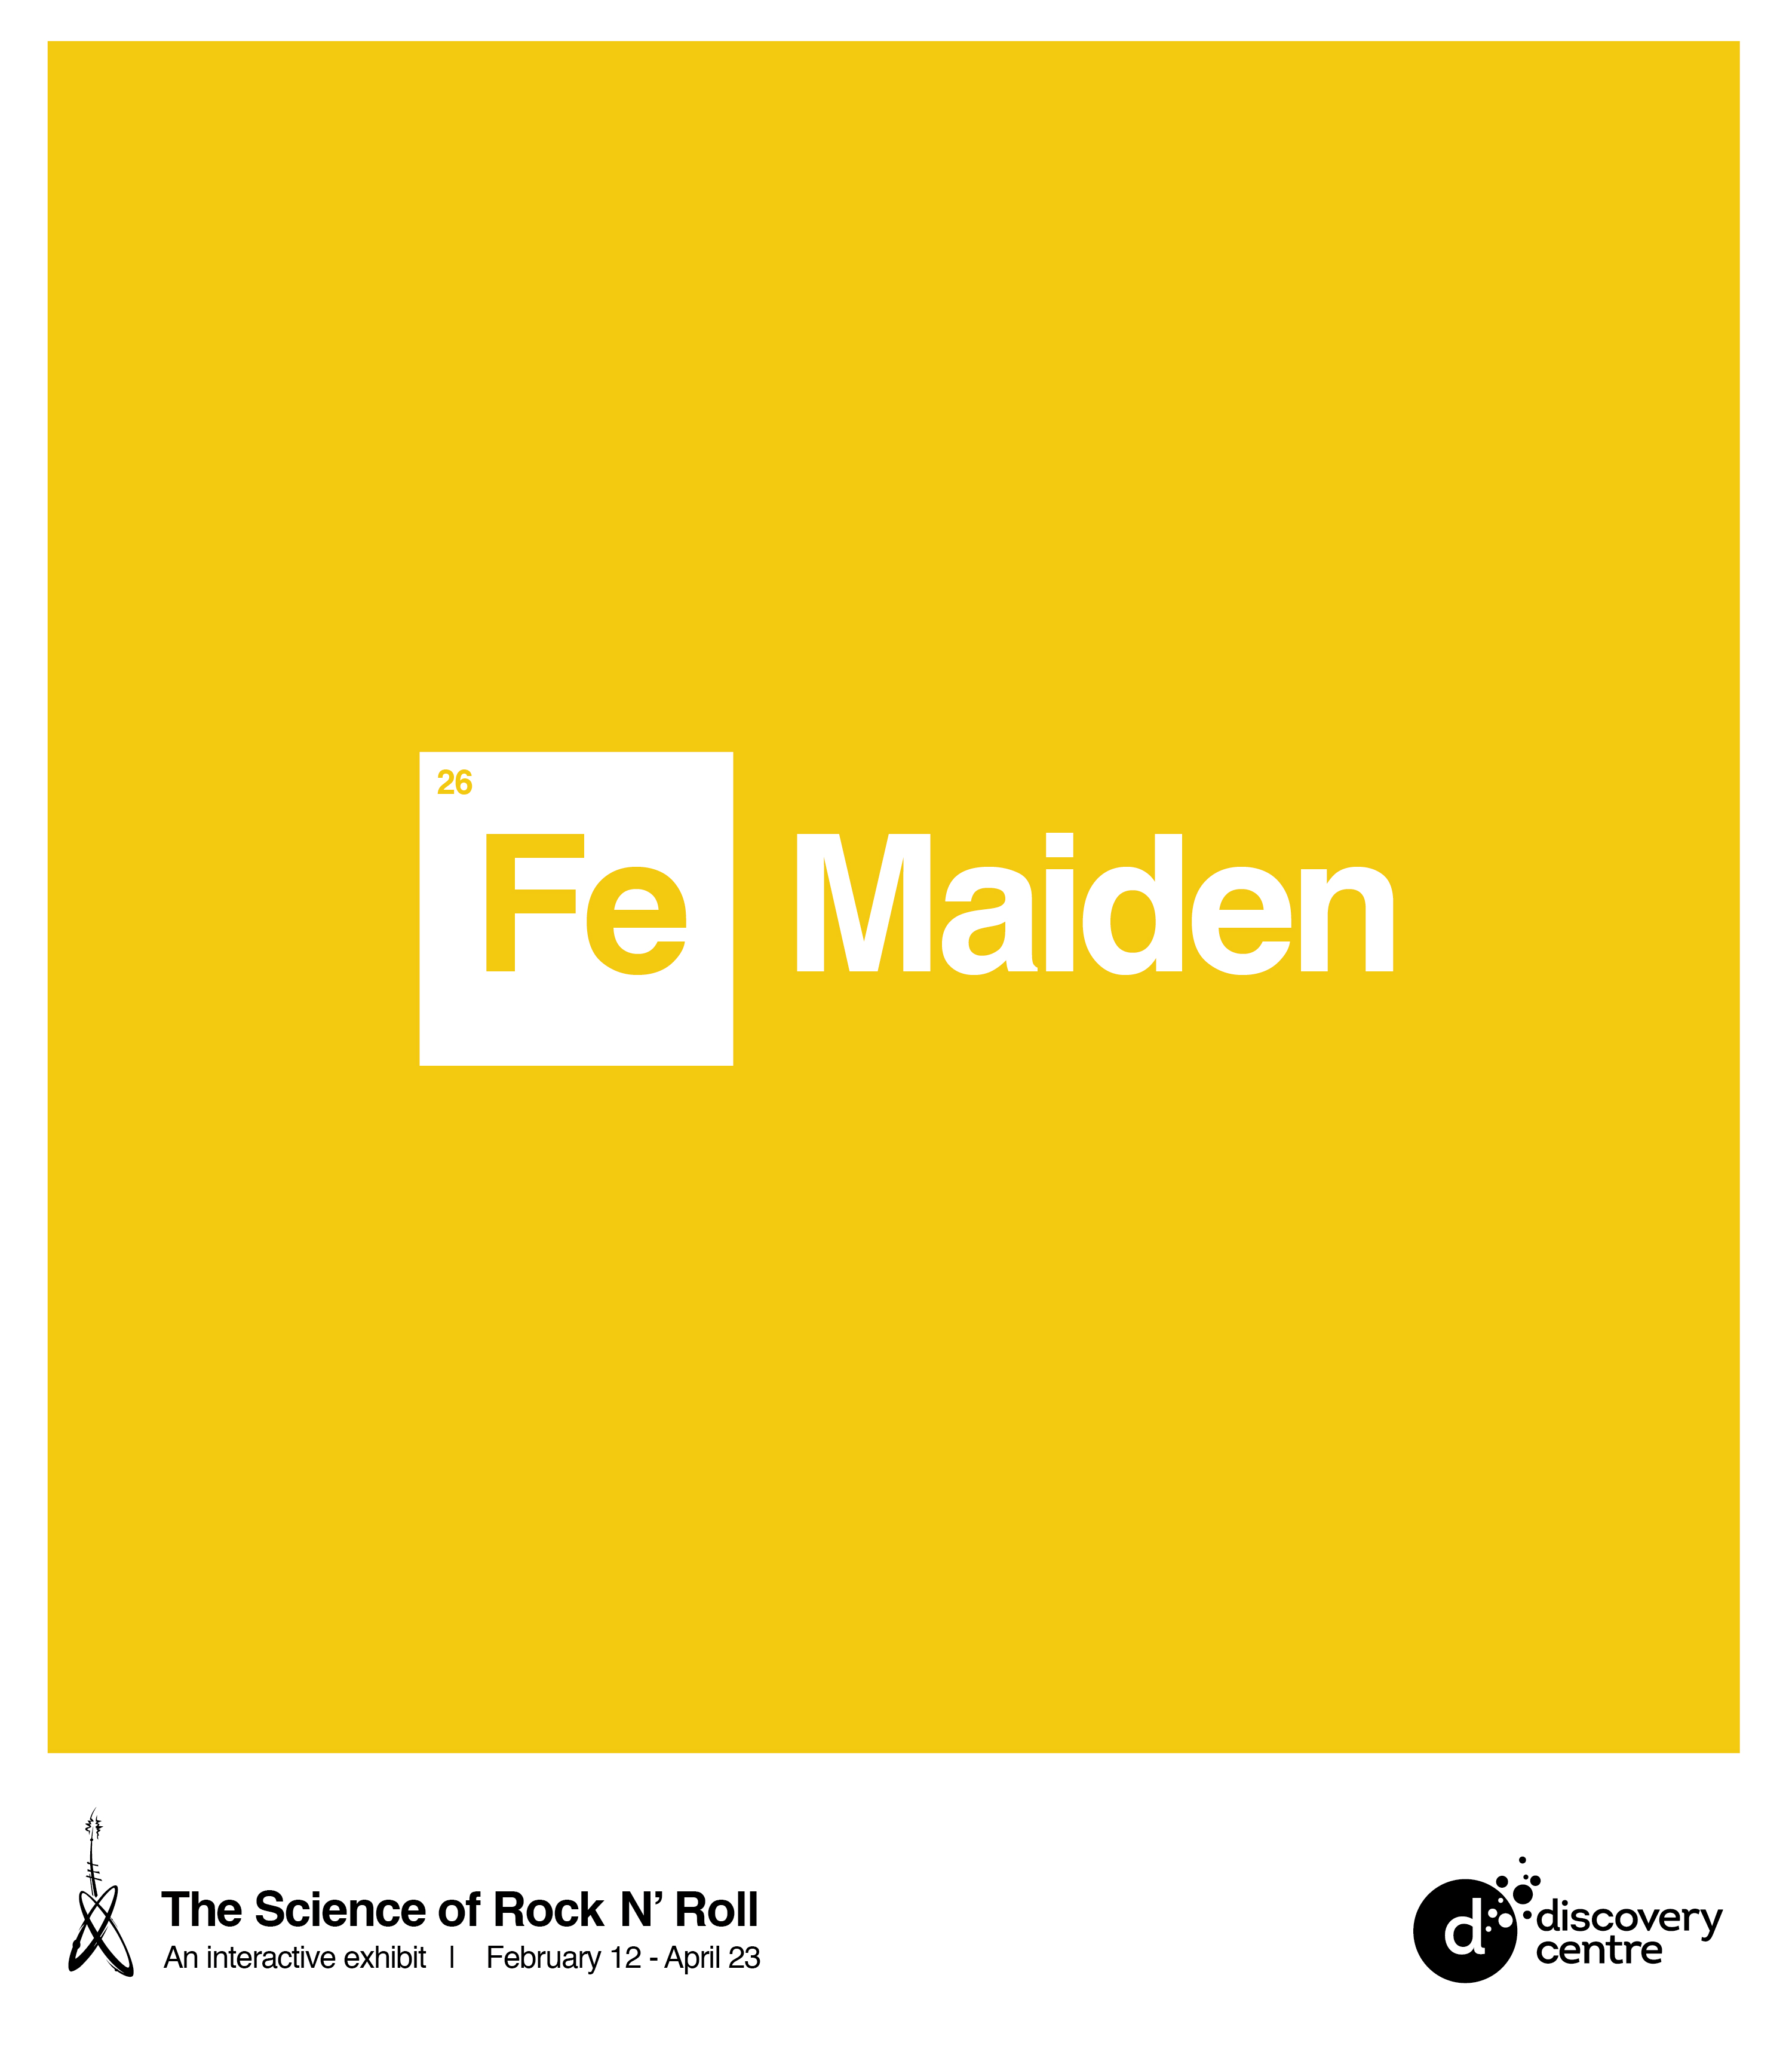 Marketing awards 2017 winners famous bandmusician names for their elemental abbreviations found on the periodic table iron maiden became fe maiden while freddie mercury became urtaz Gallery